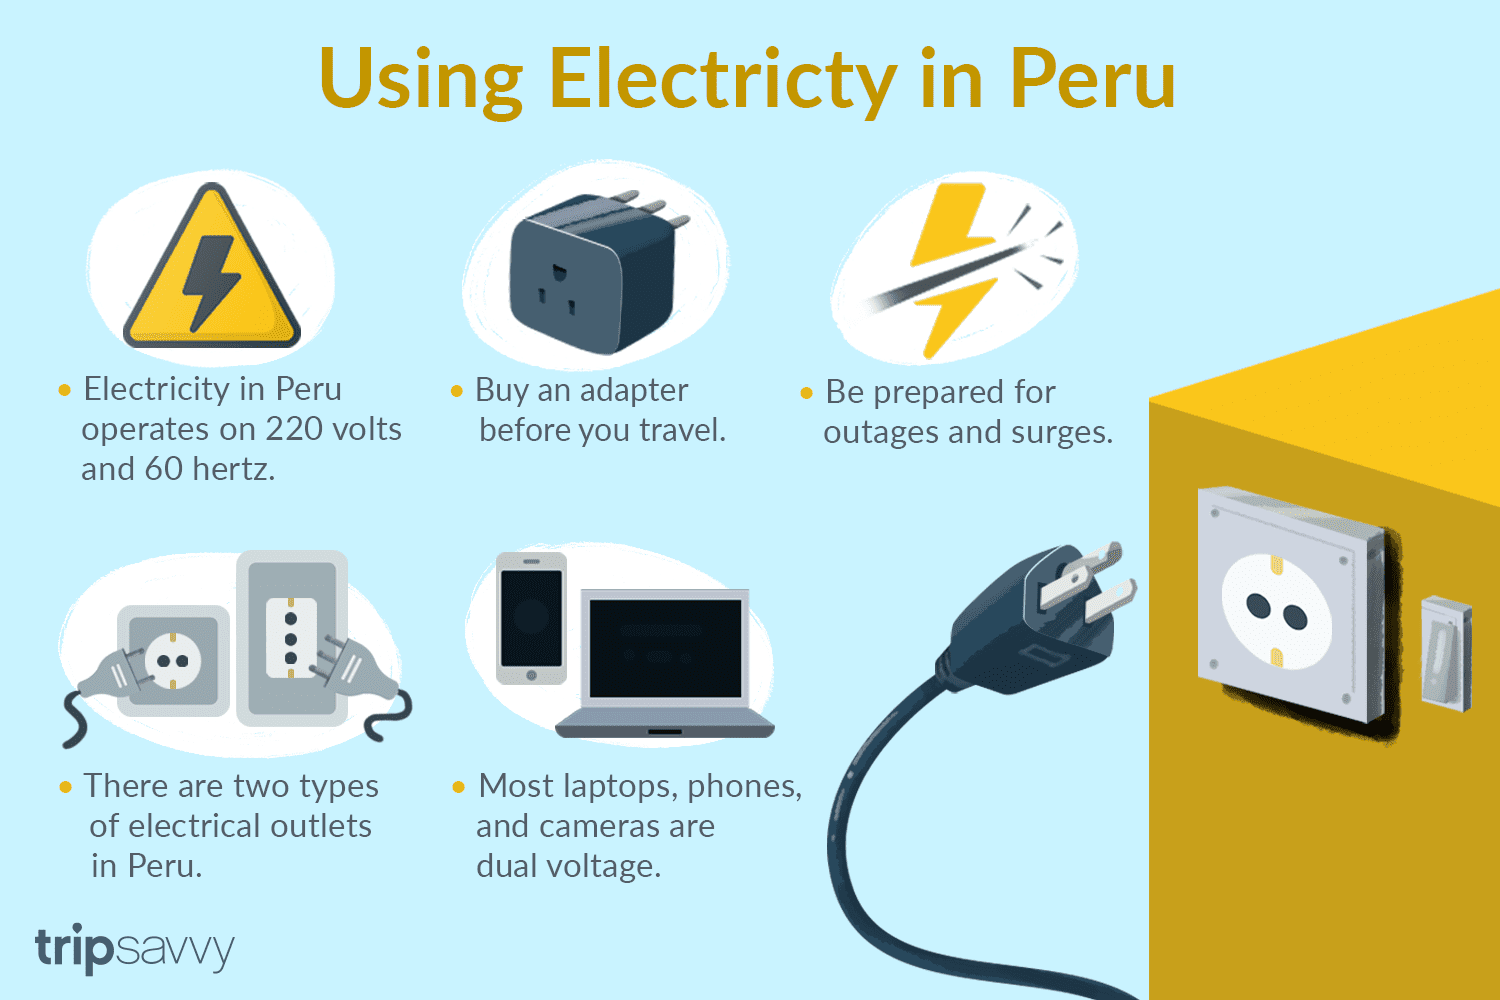 Electricity in Peru: Outlets, Plugs, and Voltage